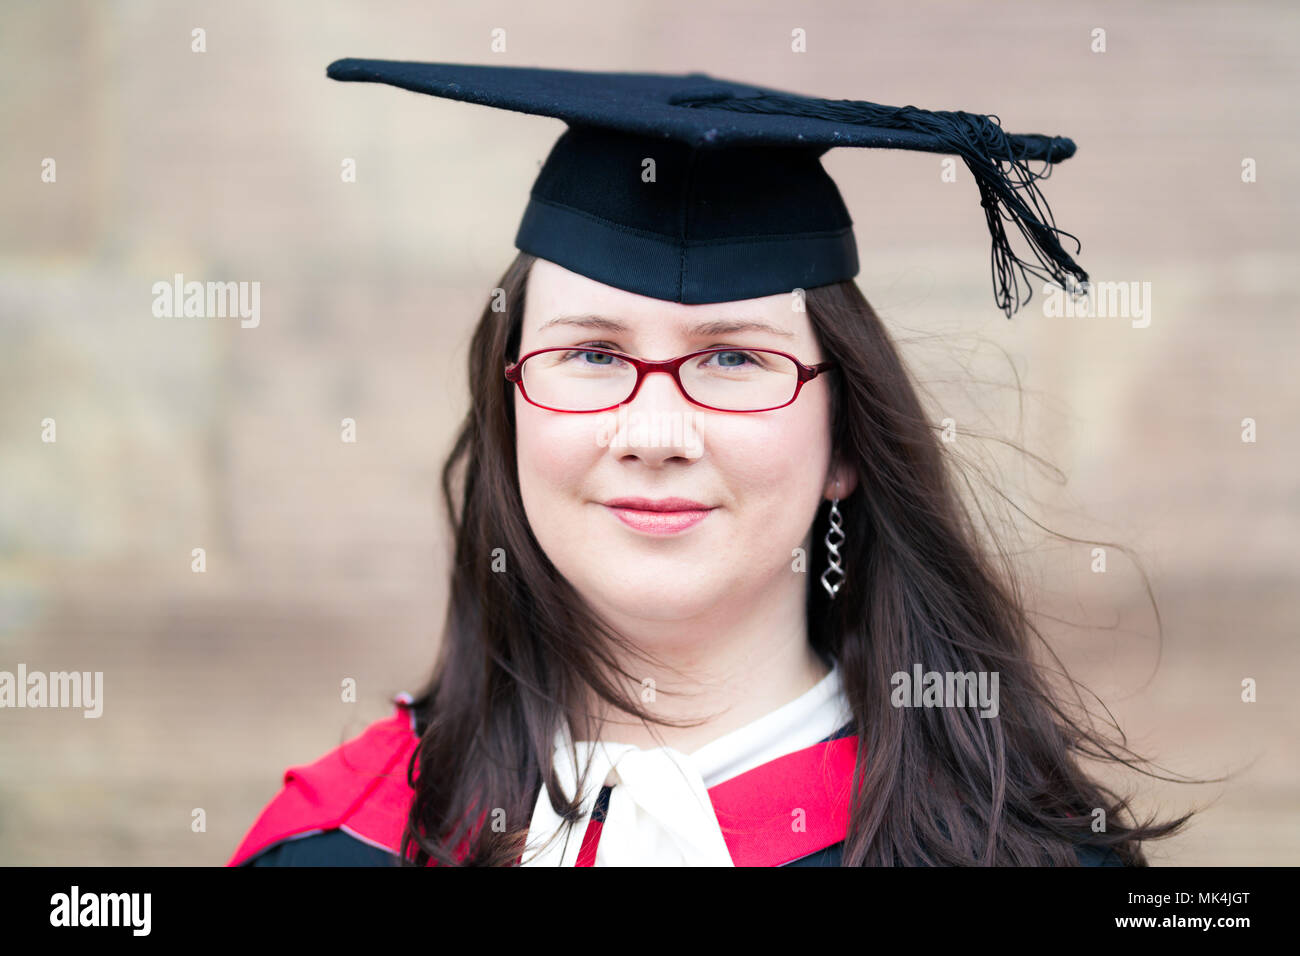 Mature Plus-Size Female Graduate Wearing Cap & Gown with Glasses ...